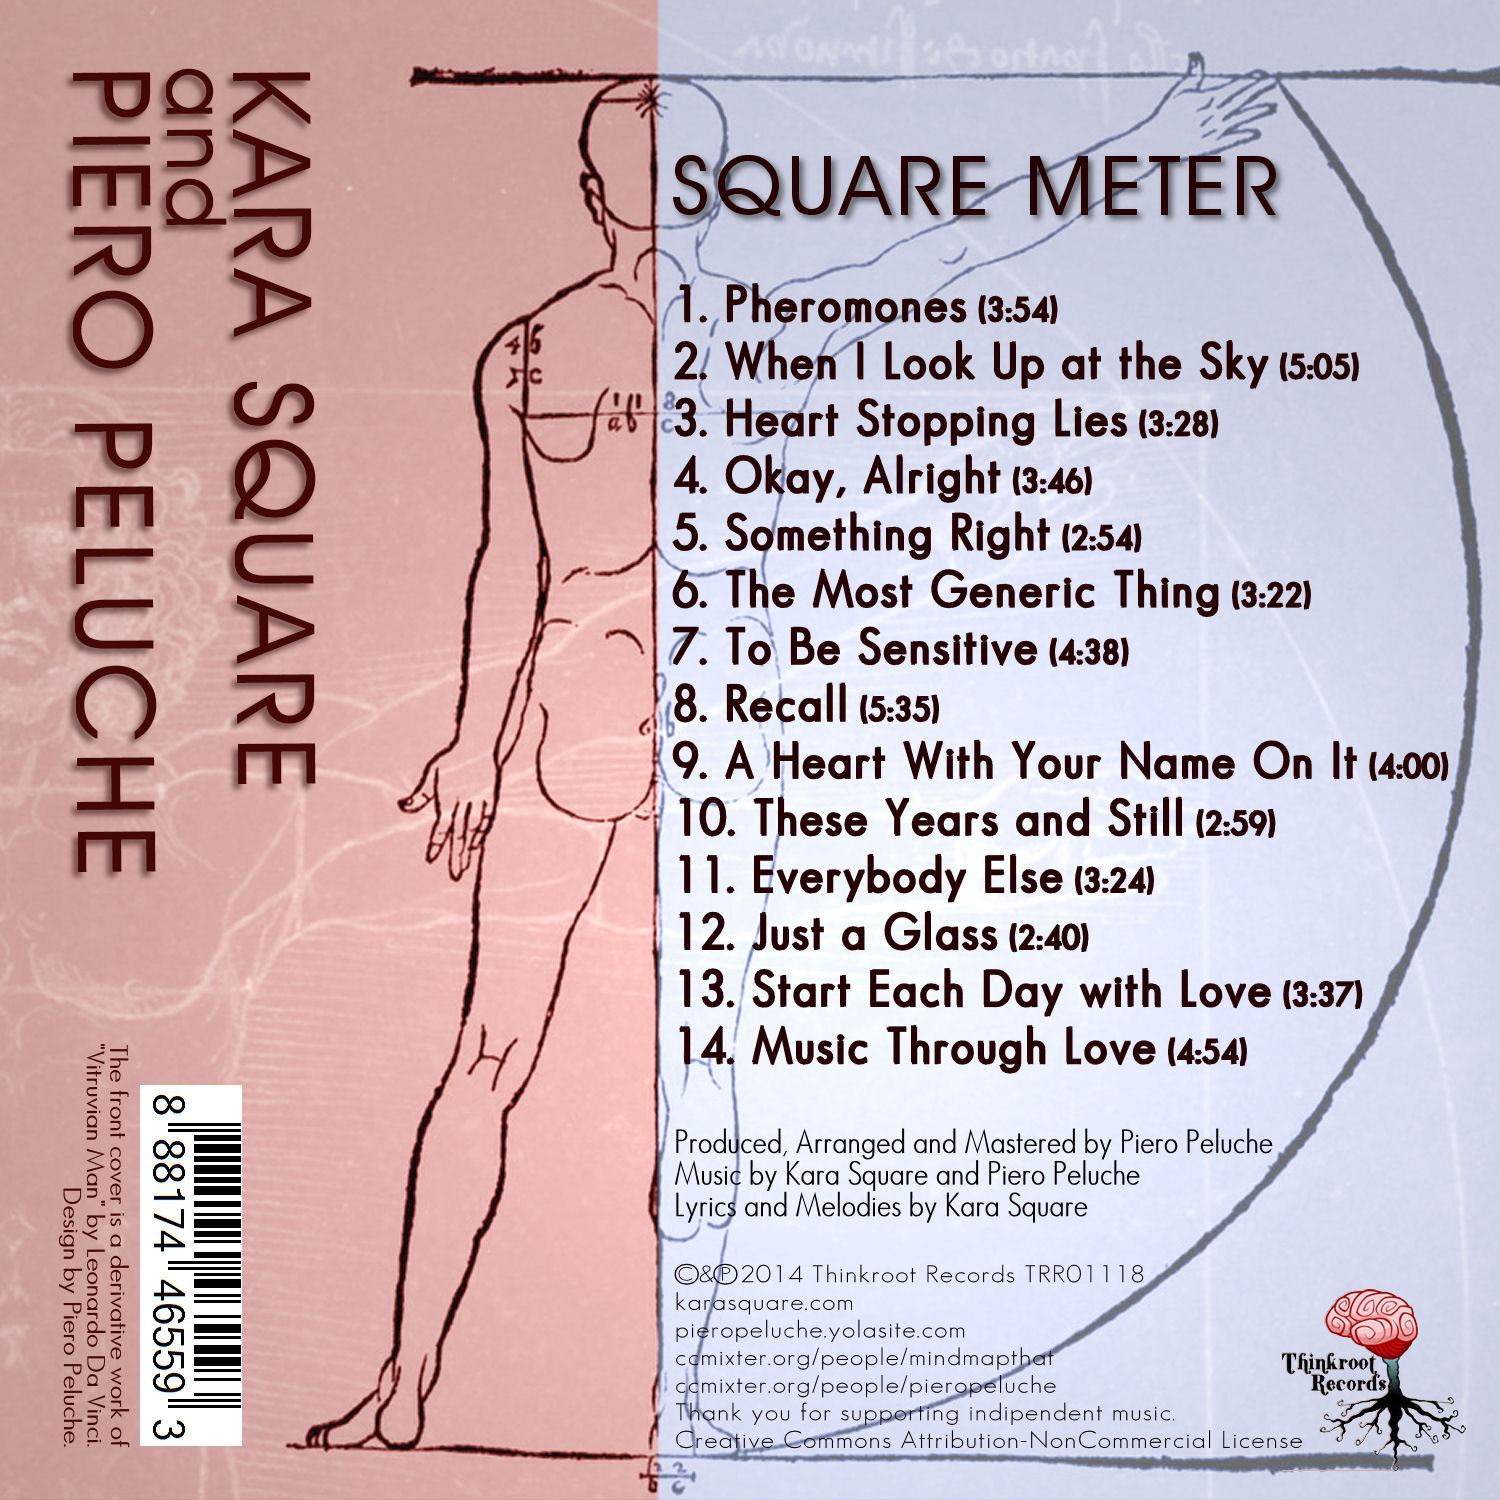 Square Meter - Back Cover